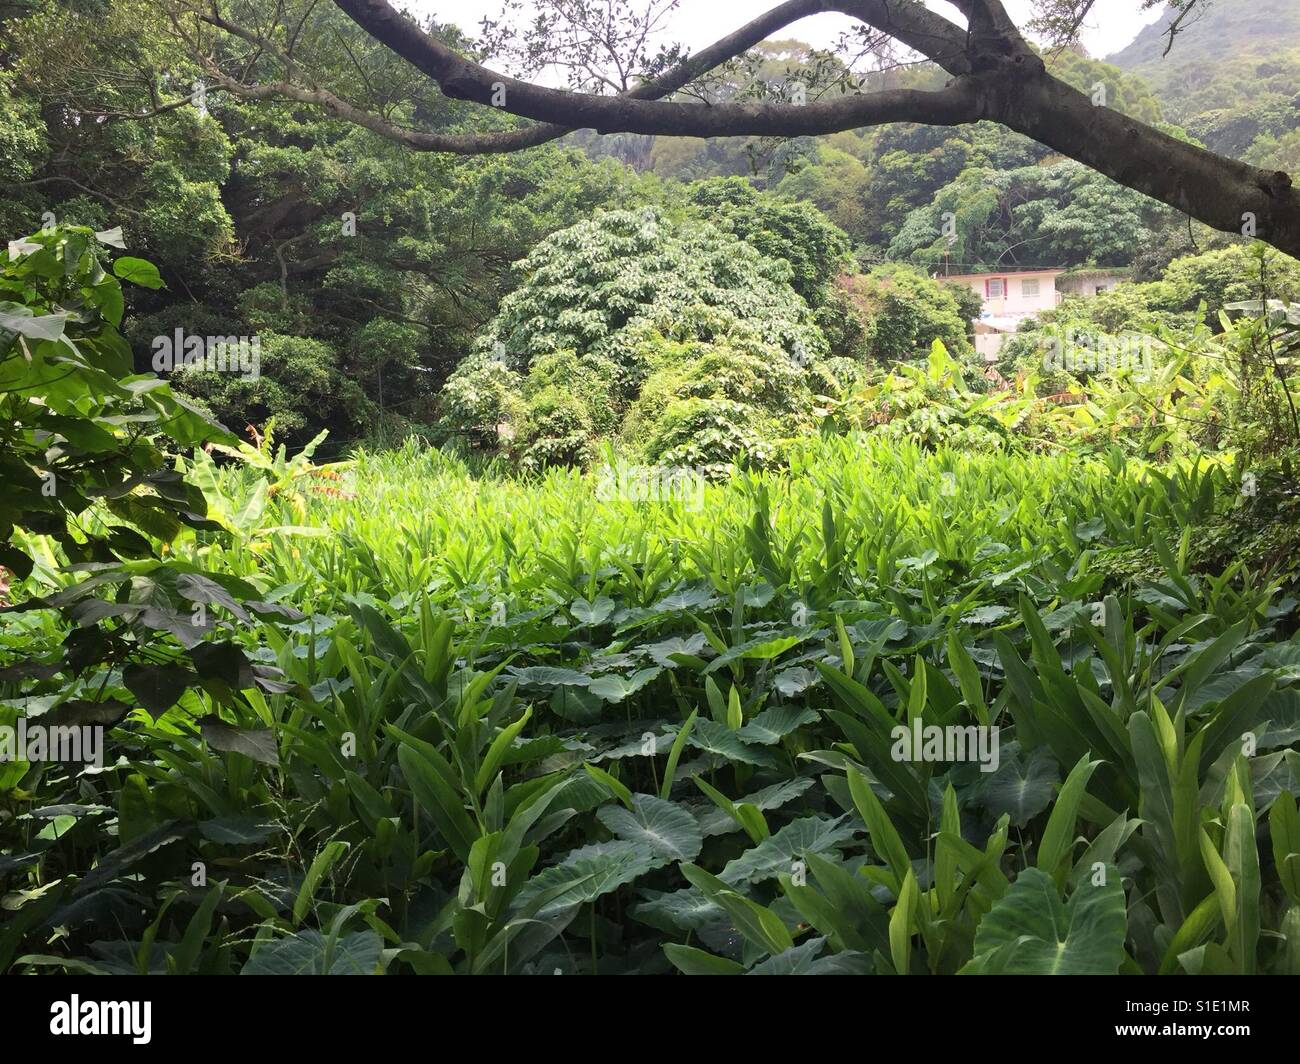 Green fields in Macau - Stock Image